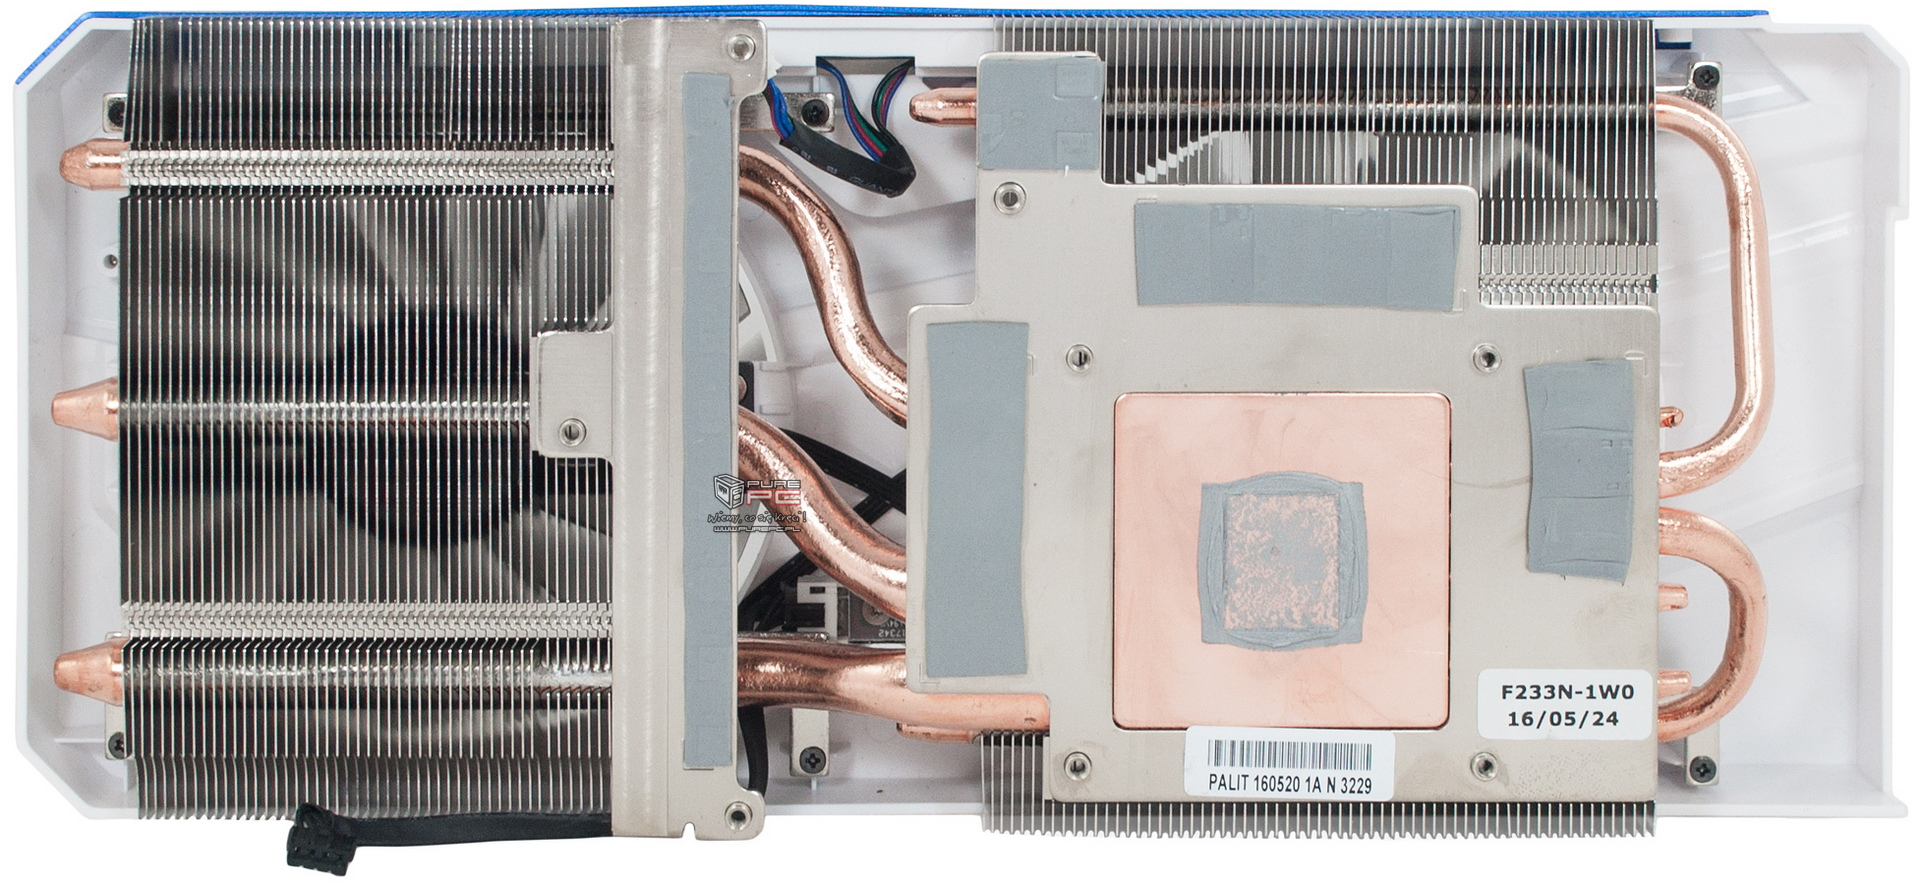 Aftermarket GPU coolers, anyone care to share their